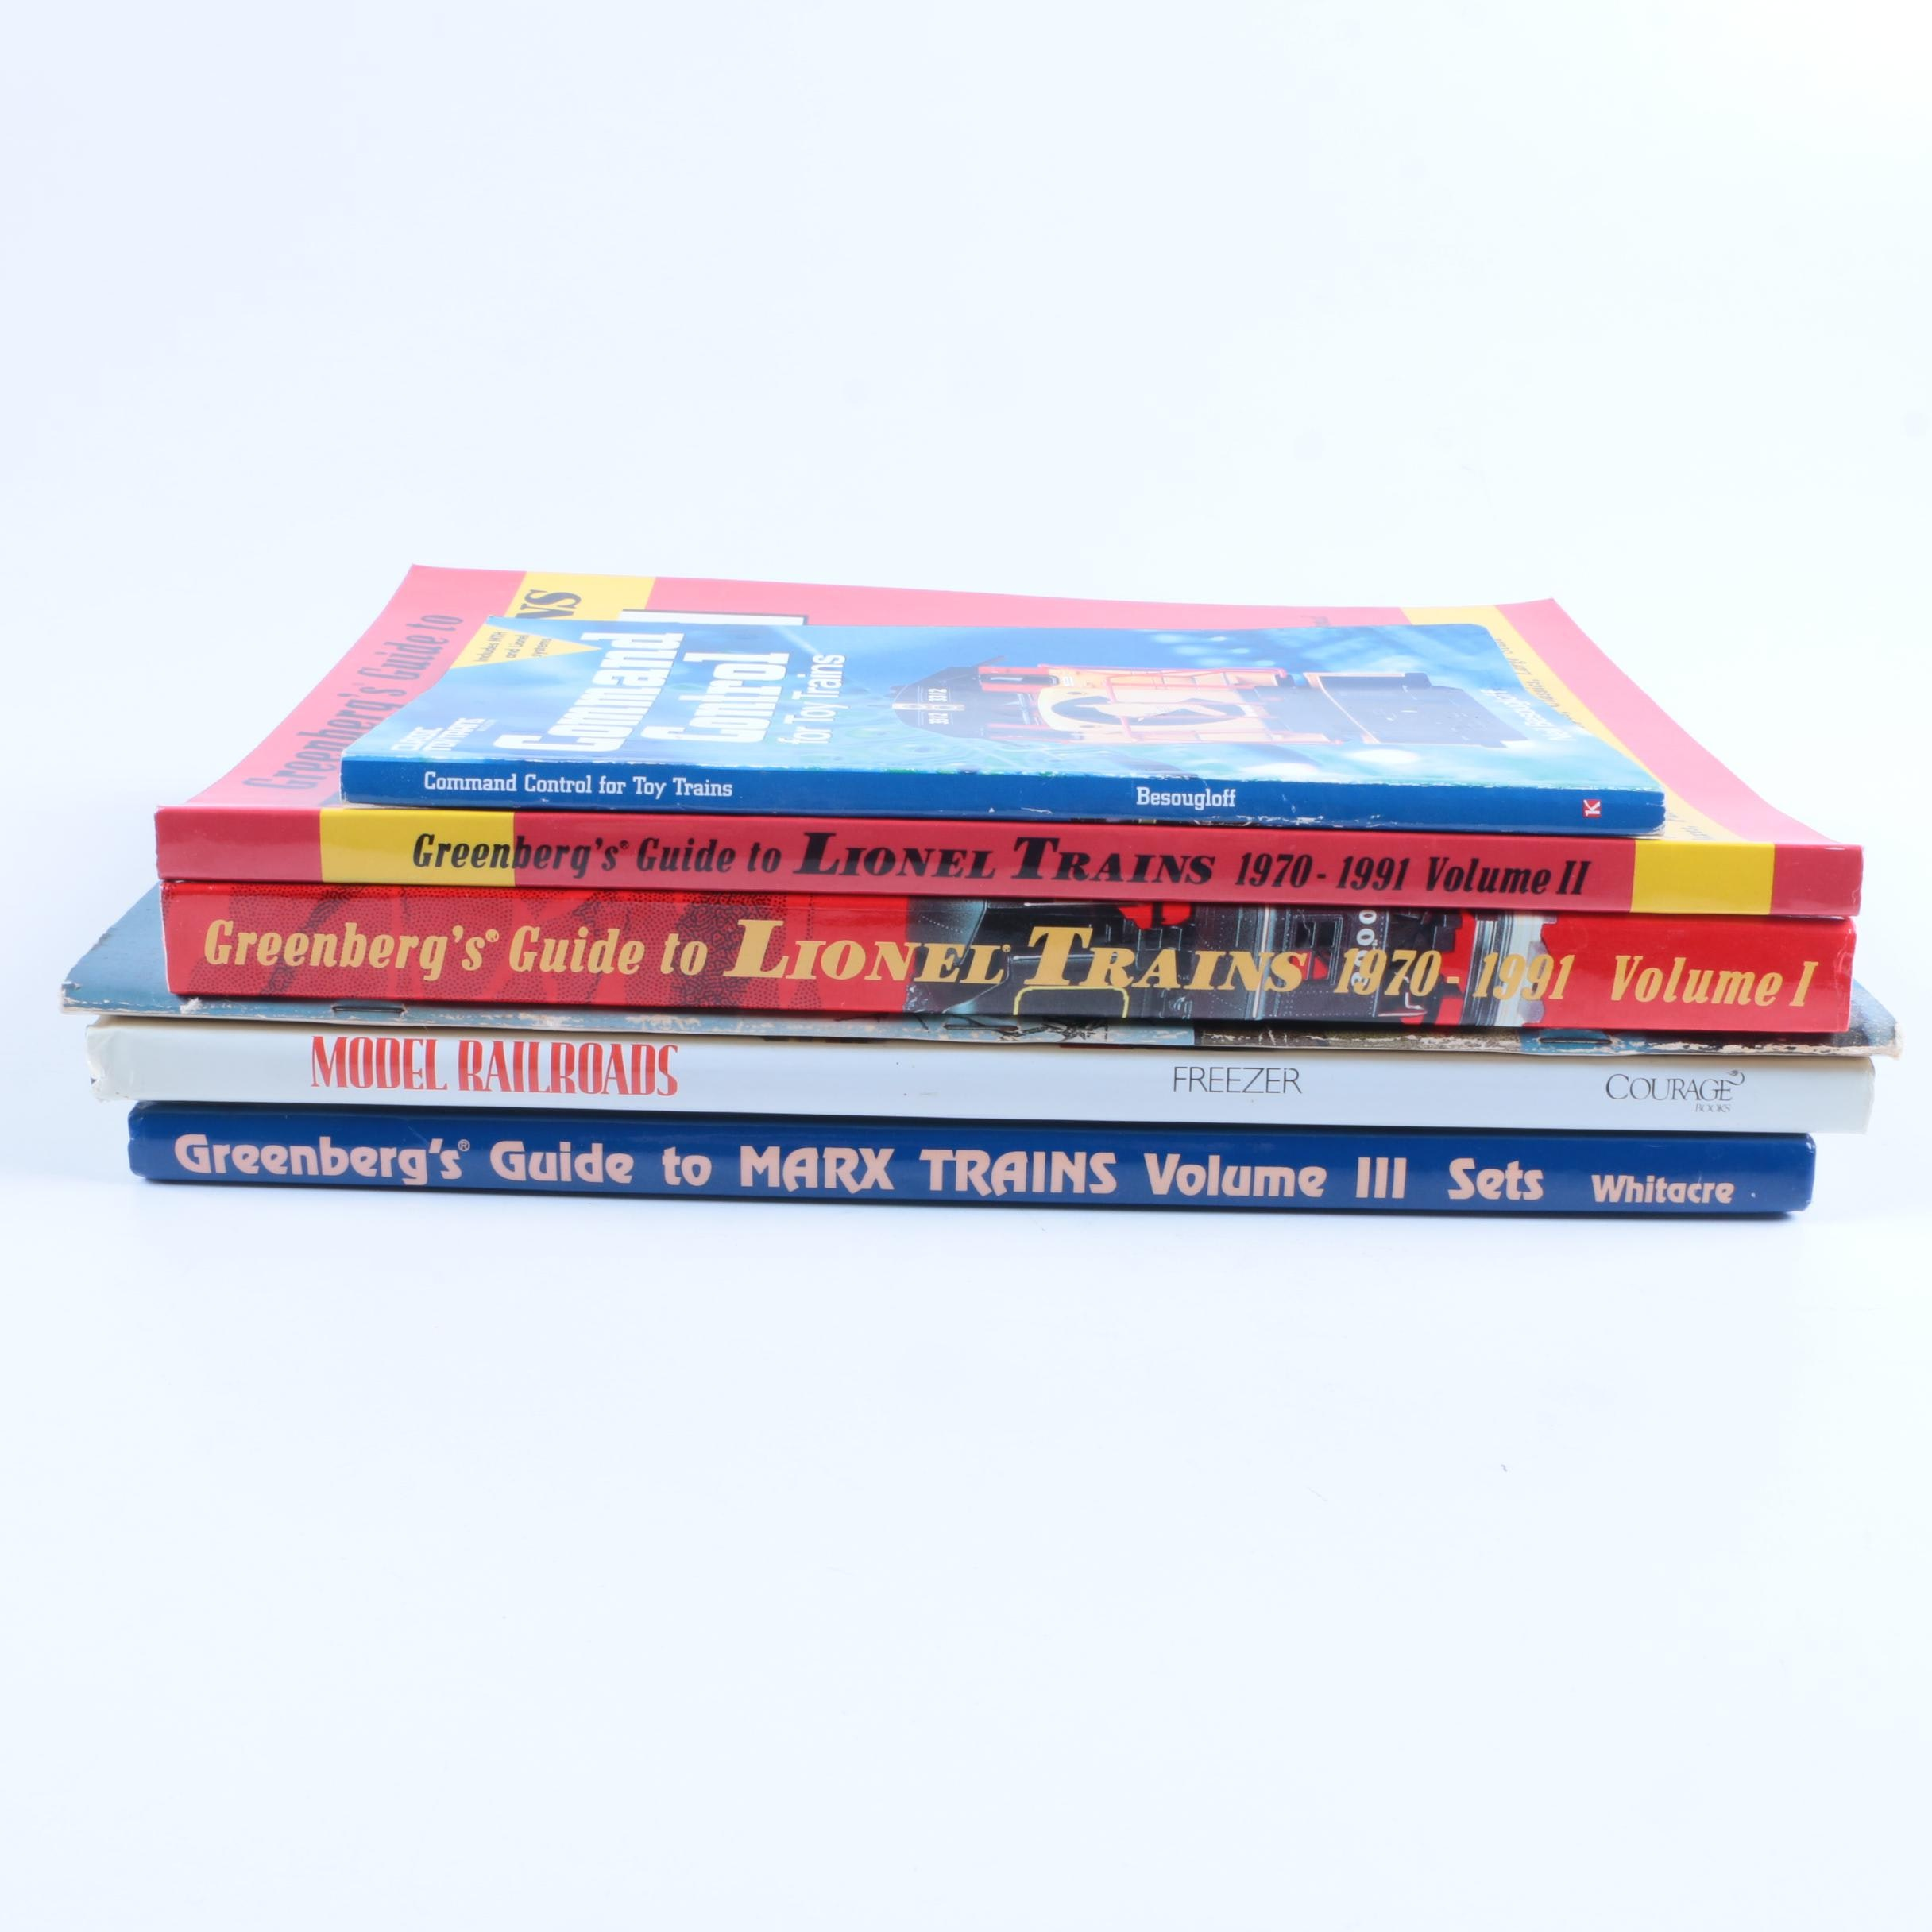 Assorted Books on Model Trains